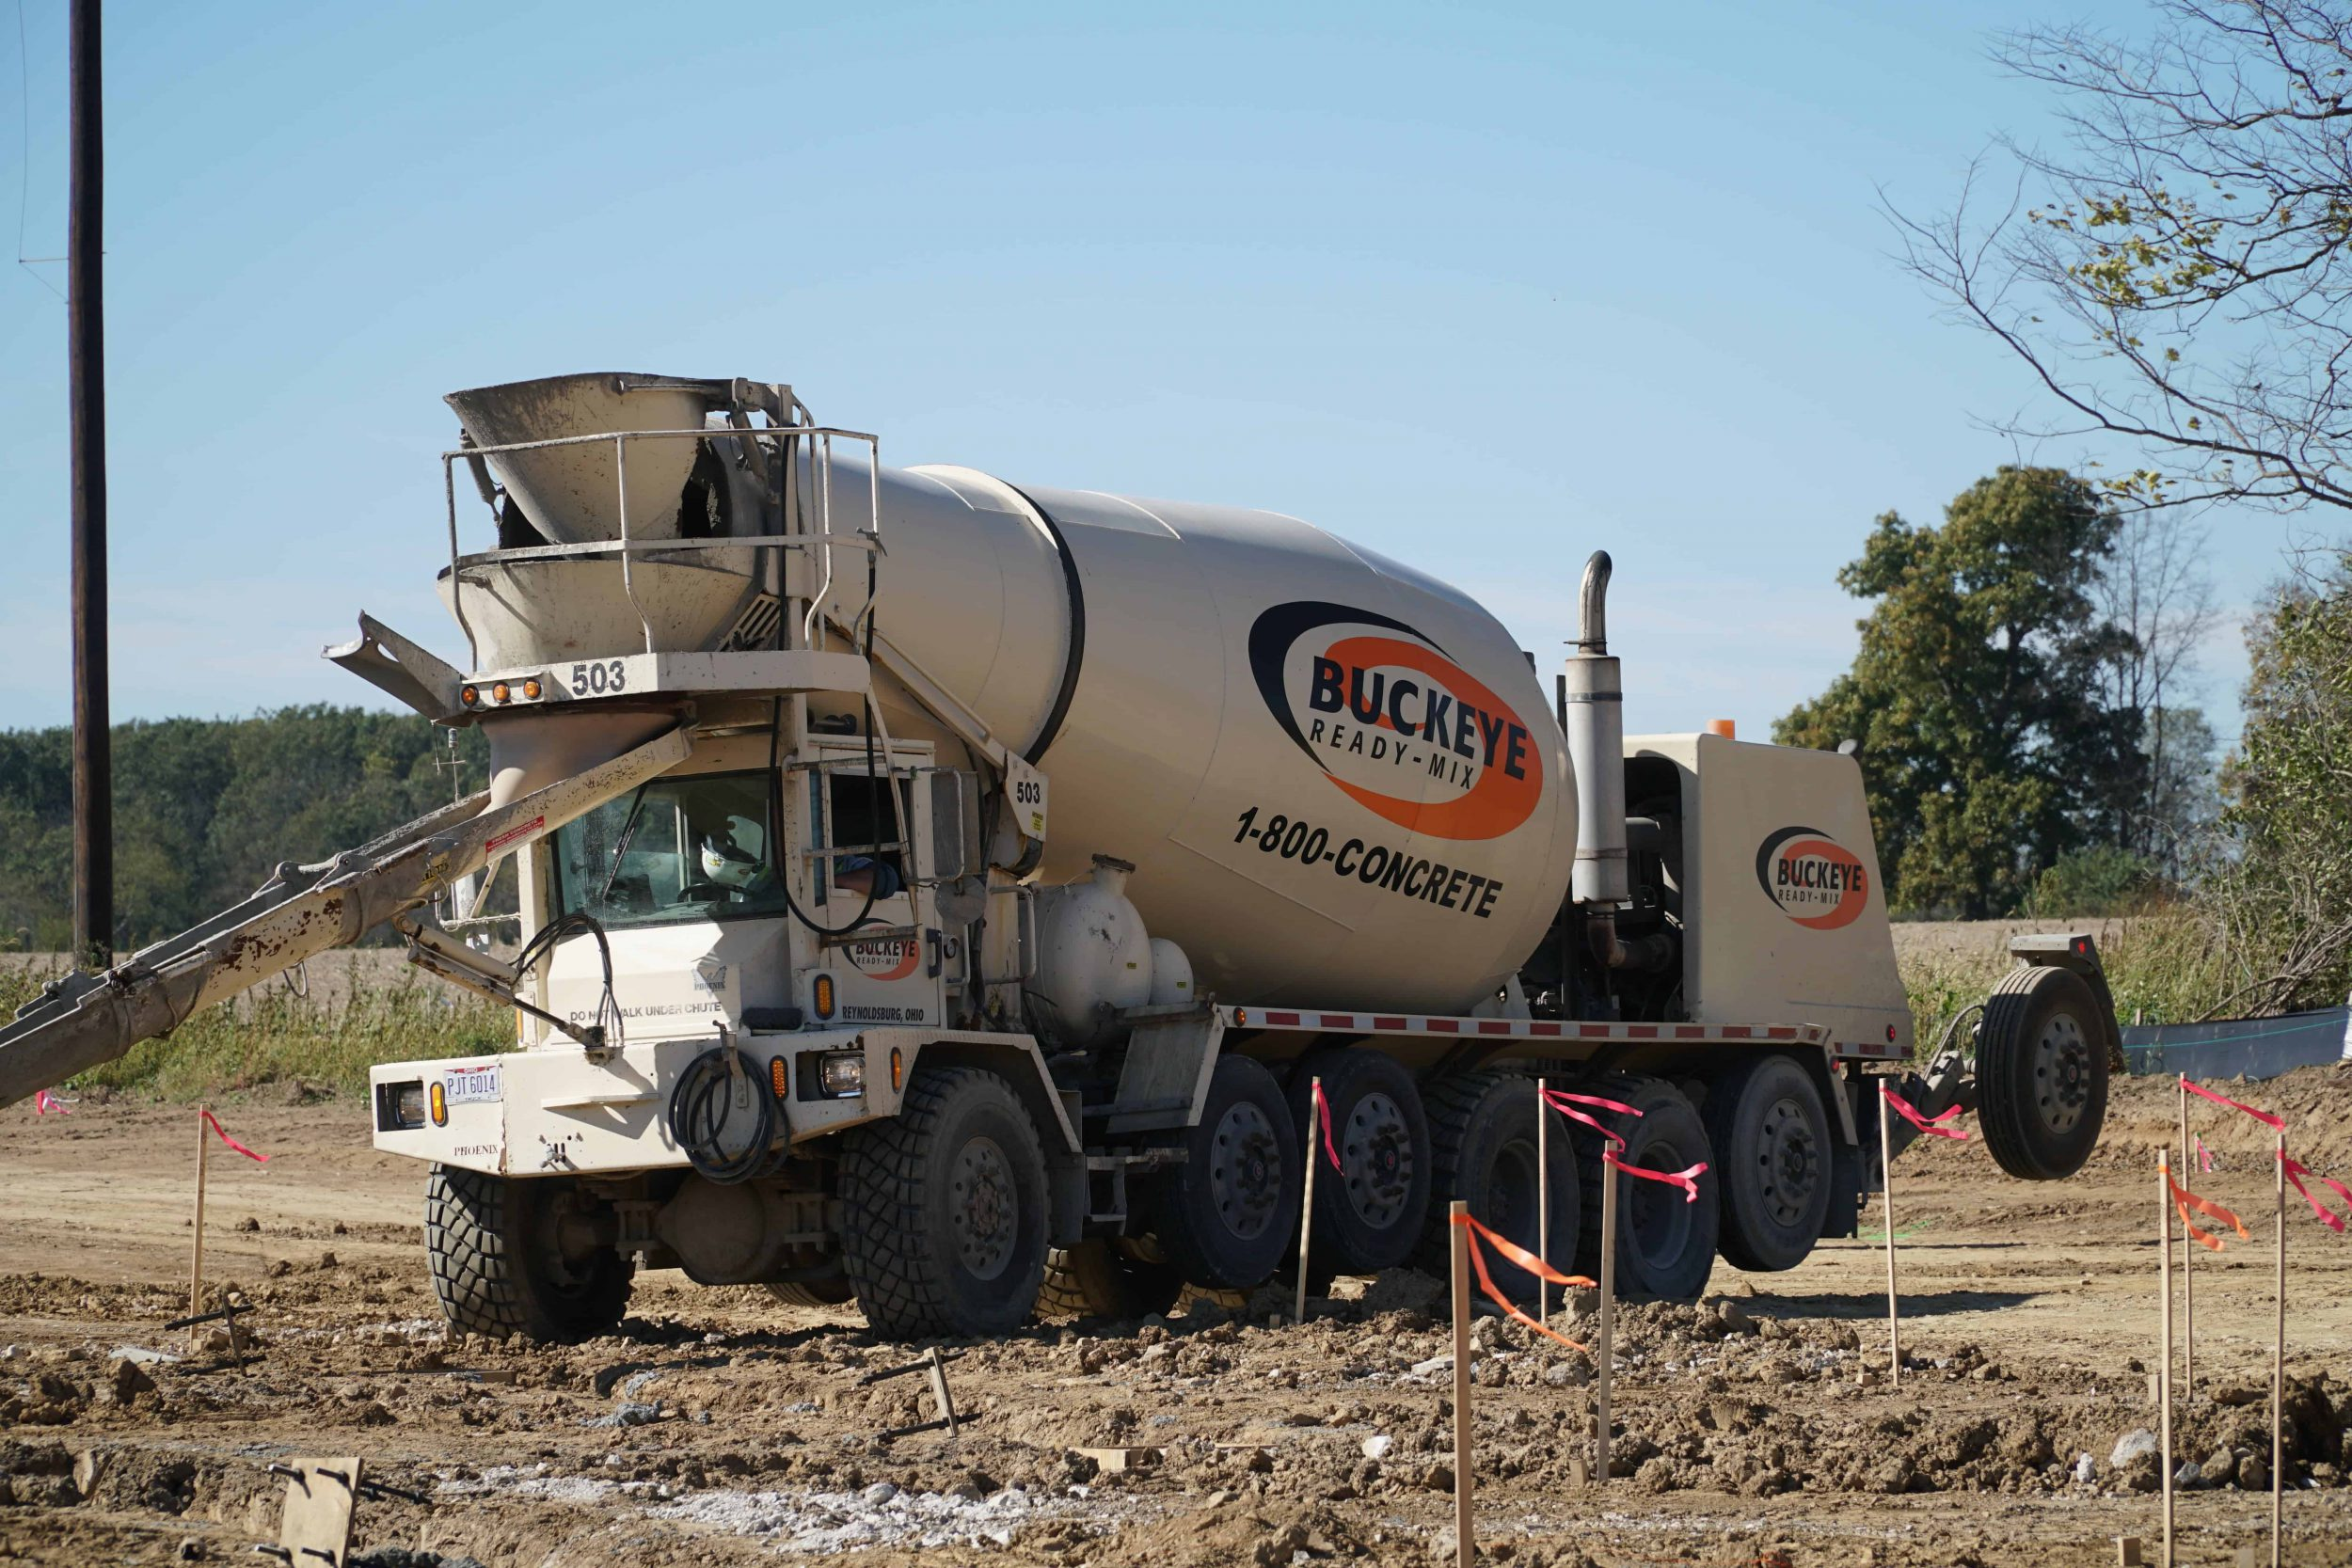 1-800-CONCRETE | BUCKEYE READY MIX ON NEW SCHOOL CONSTRUCTION SITE